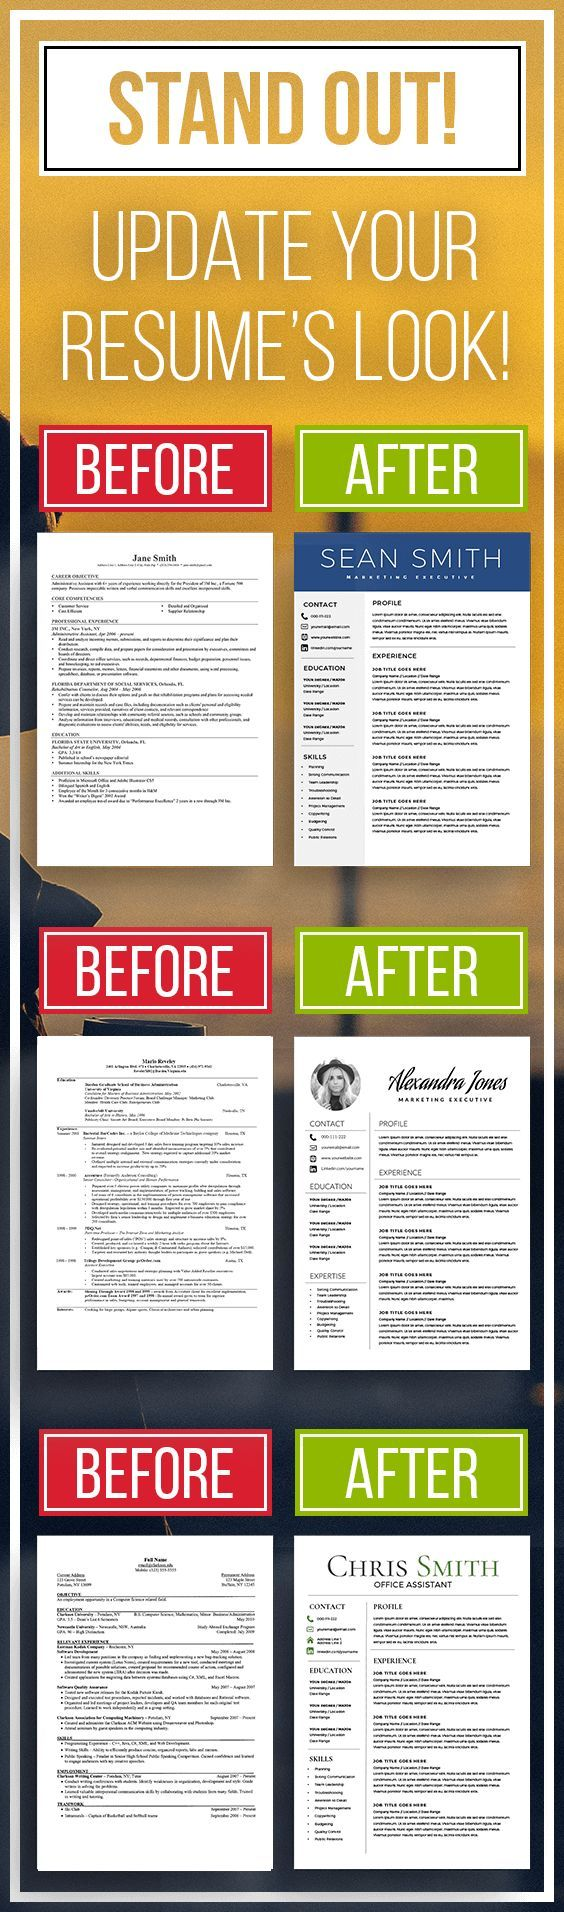 Top Selling Resume Templates - STAND OUT! | Resumes | Pinterest ...